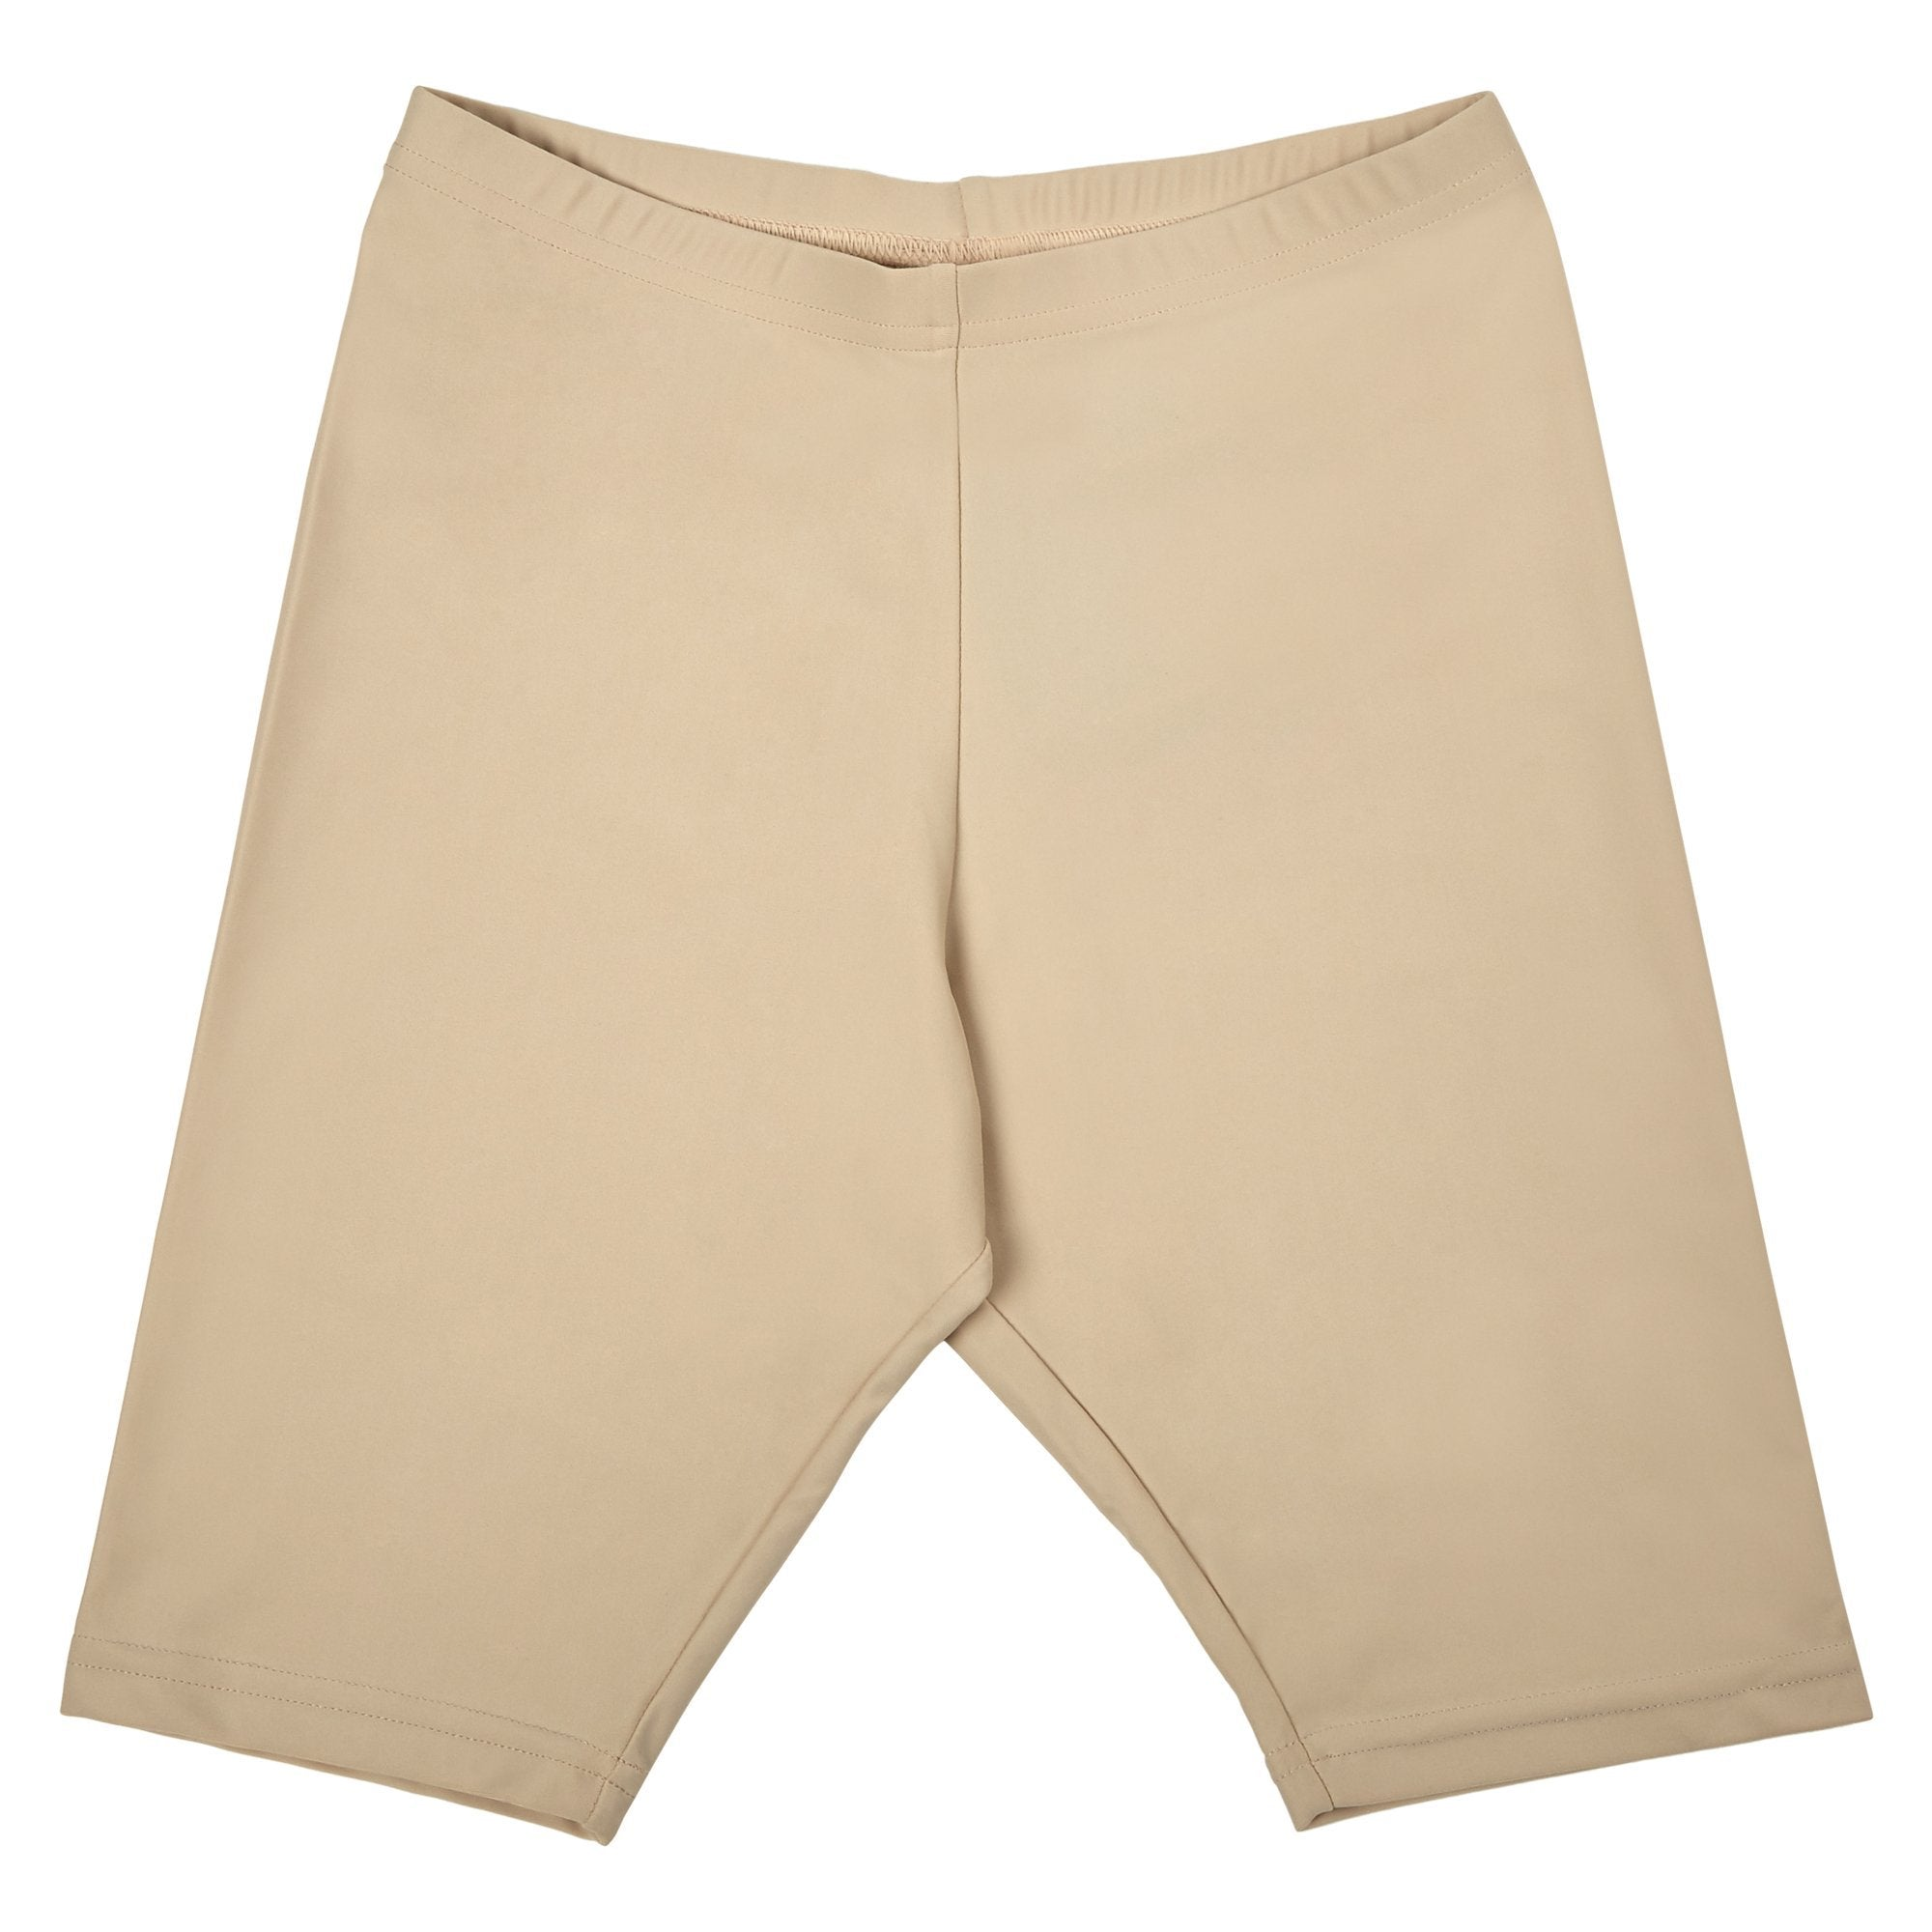 Champion Nylon Bike Shorts - Skintone Apparel Champion  (2015172919355)